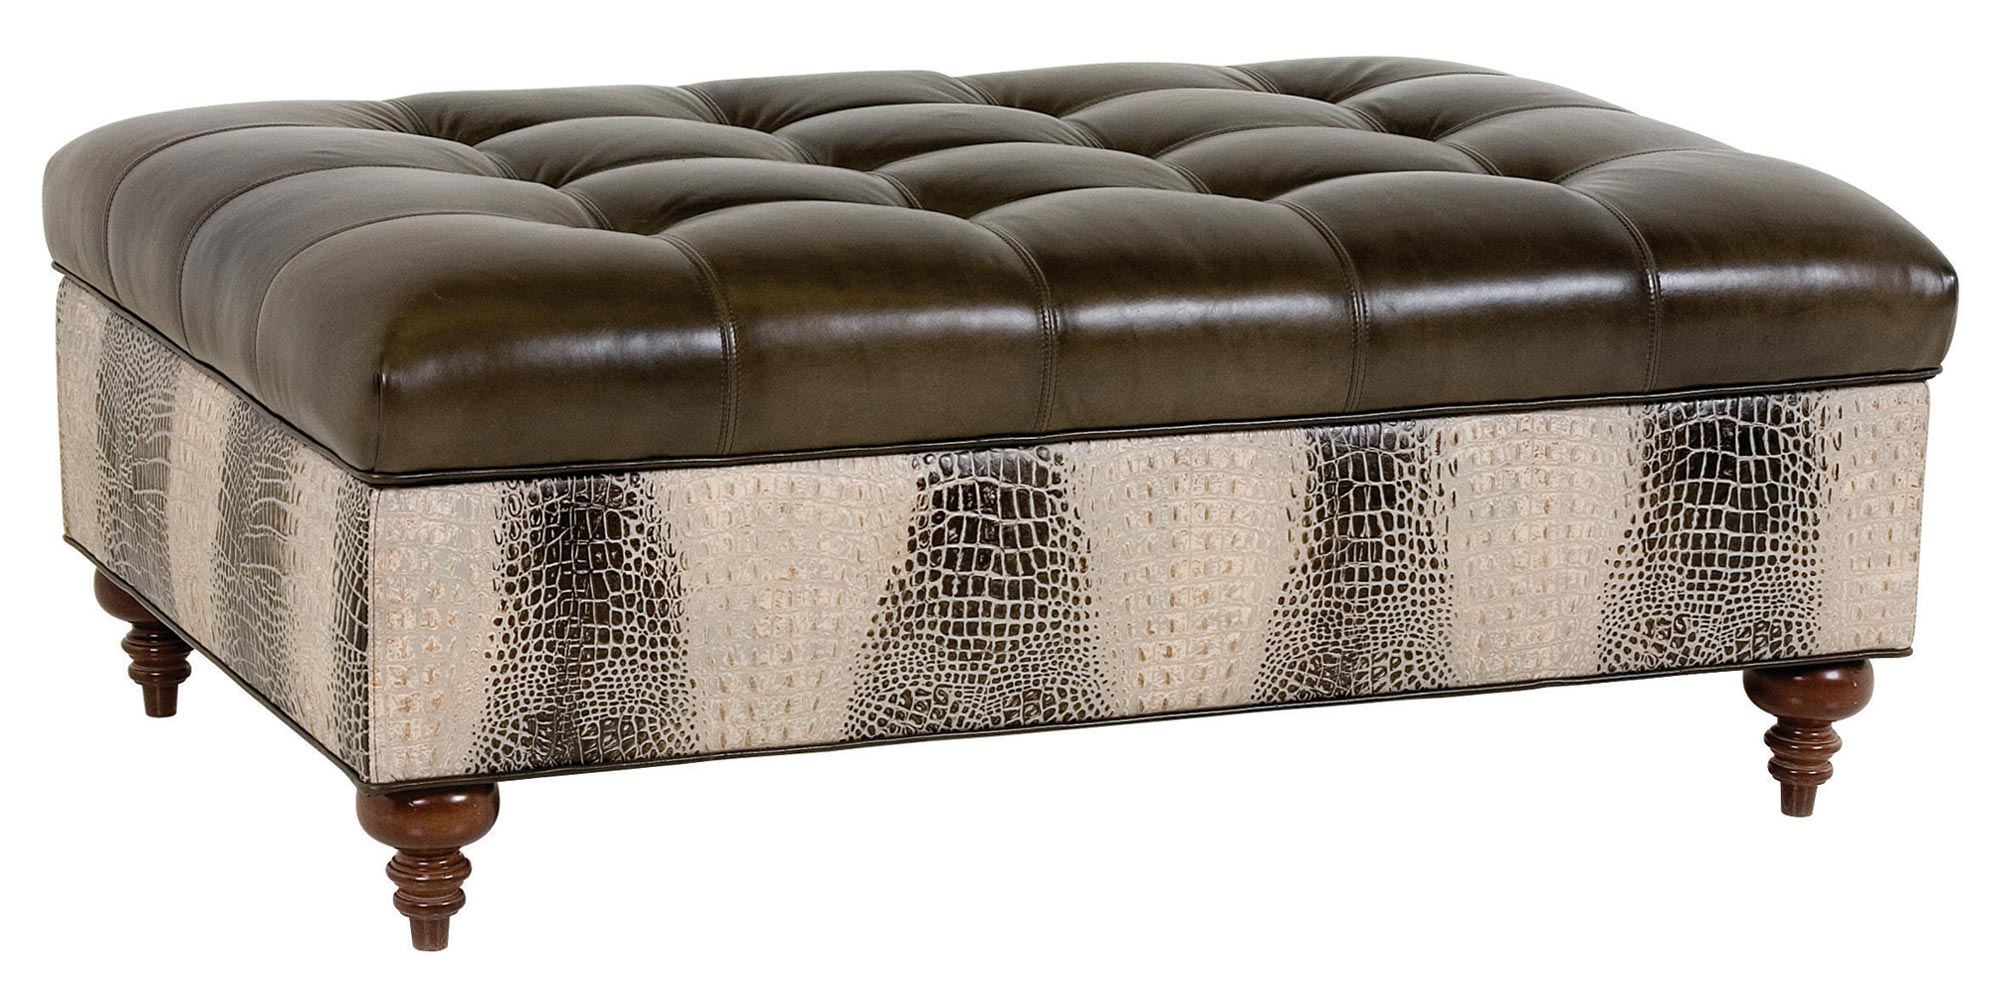 Ottomans Brussels Brown Bonded Leather Storage Chest: Tufted Rectangular Leather Storage Ottoman